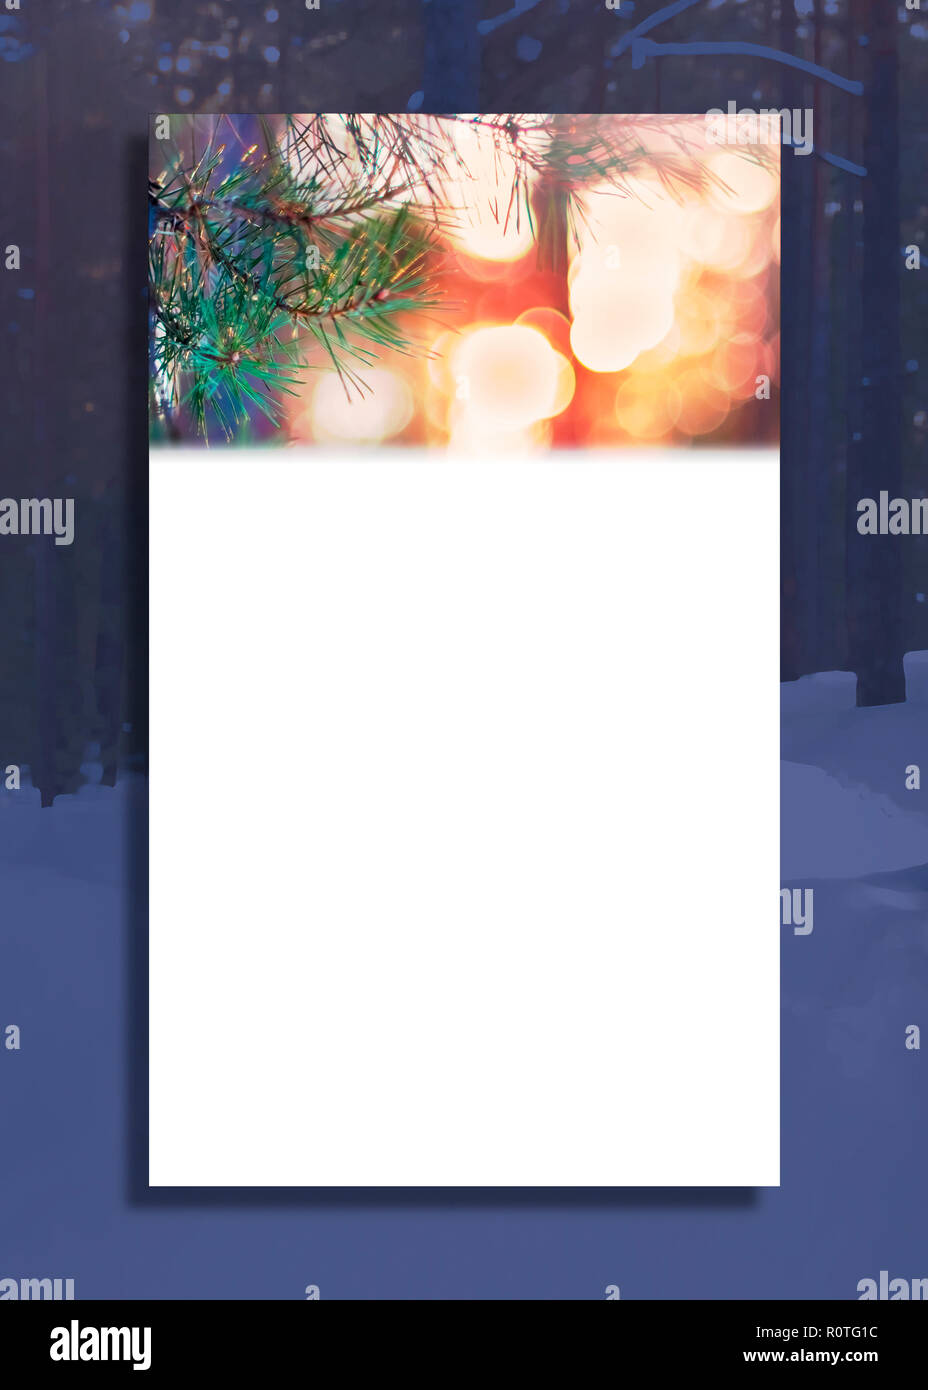 vertical greeting card illustration pine tree fir branch and lights faded blue evening winter forest background christmas and new year banner cove